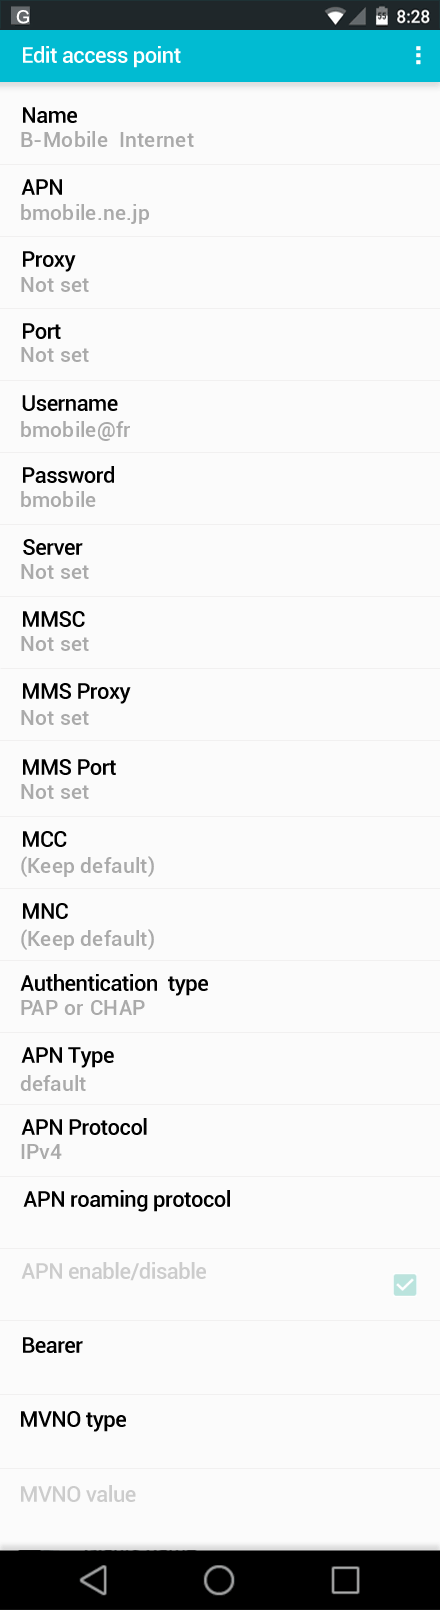 B-Mobile  Internet APN settings for Android screenshot